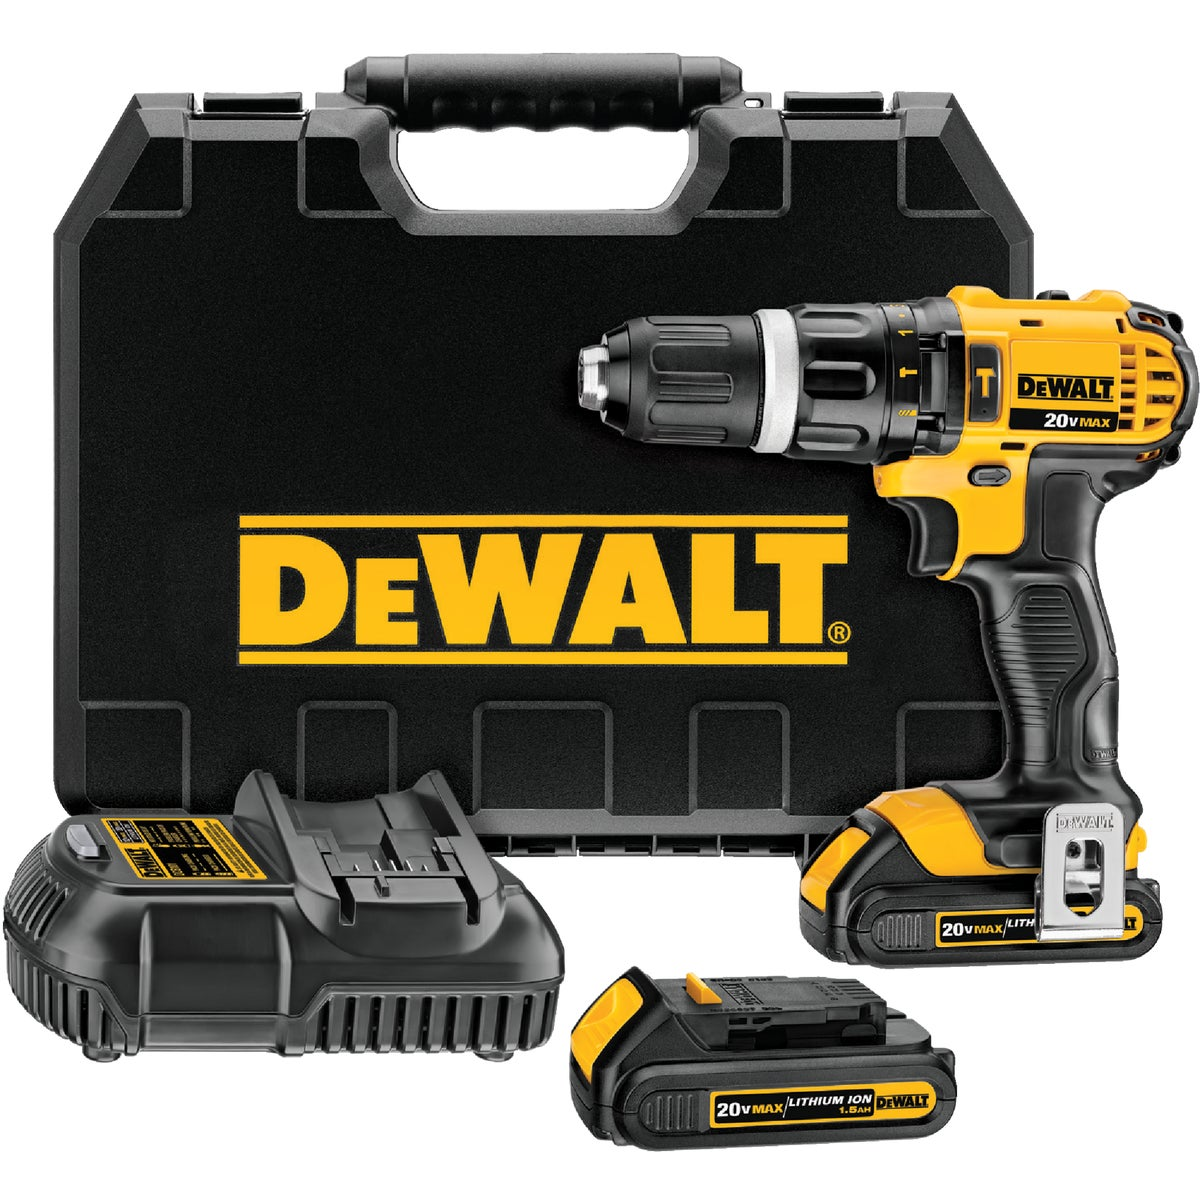 20V HAMMER DRILL KIT - DCD785C2 by DeWalt